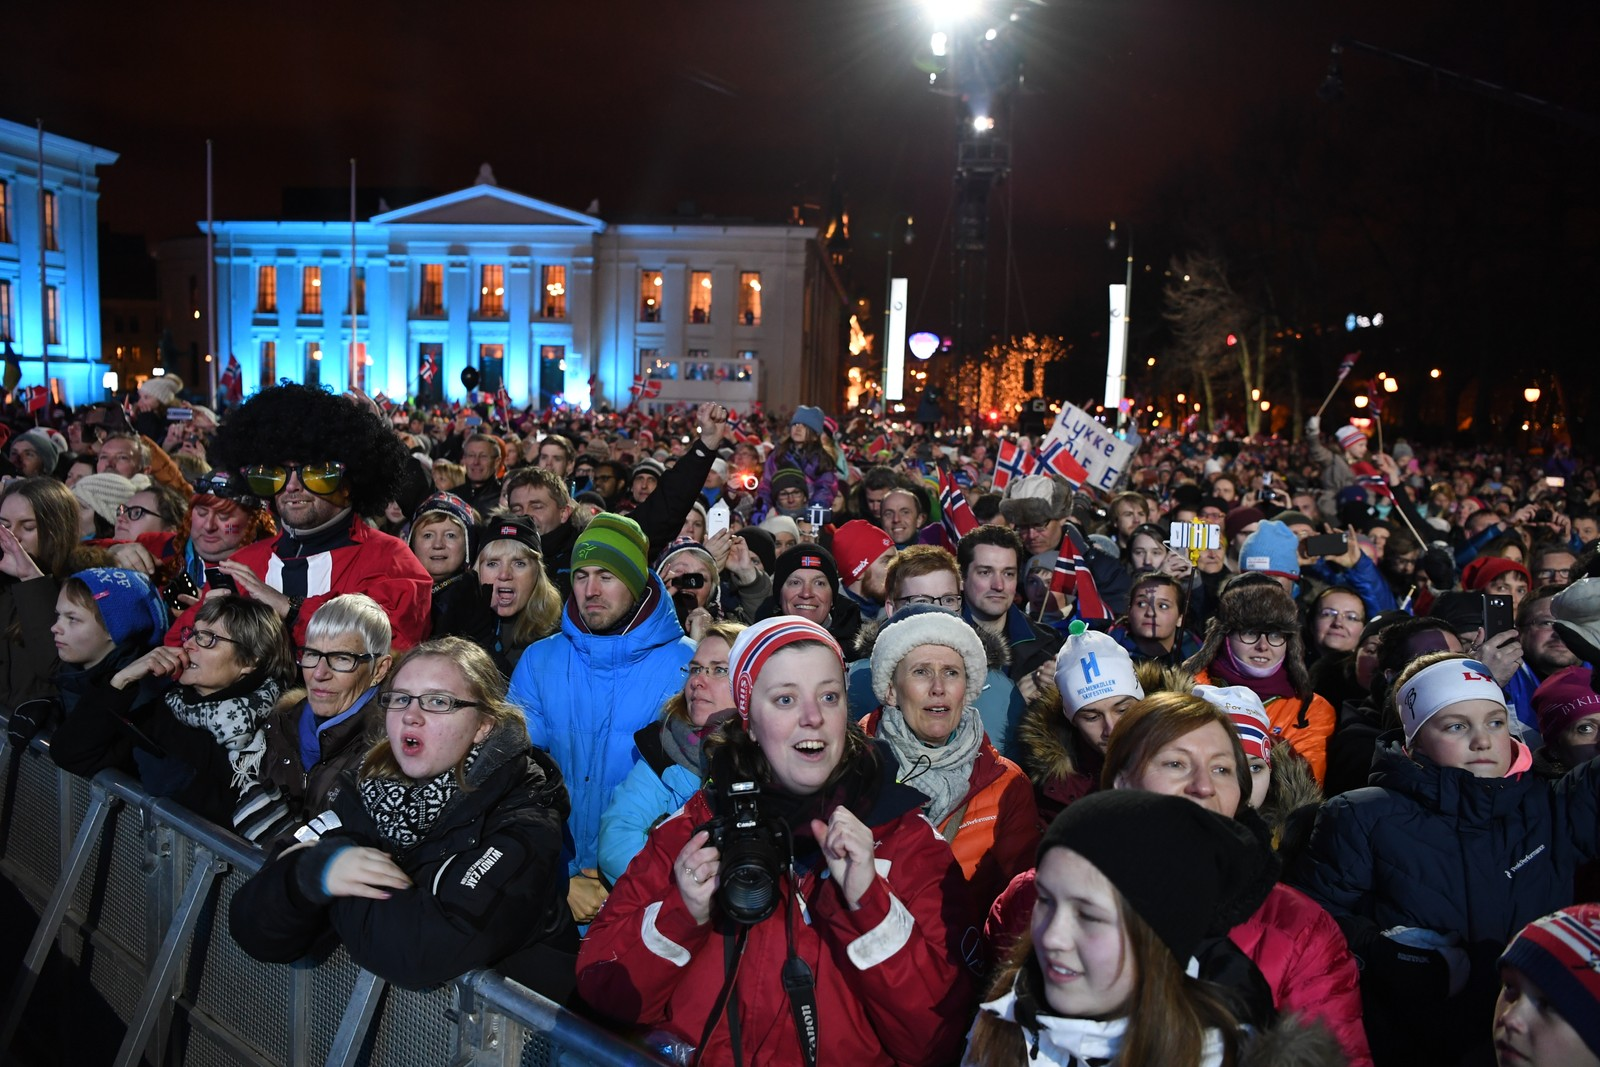 The medal plaza was crowded during the medal award ceremonies in downtown Oslo.